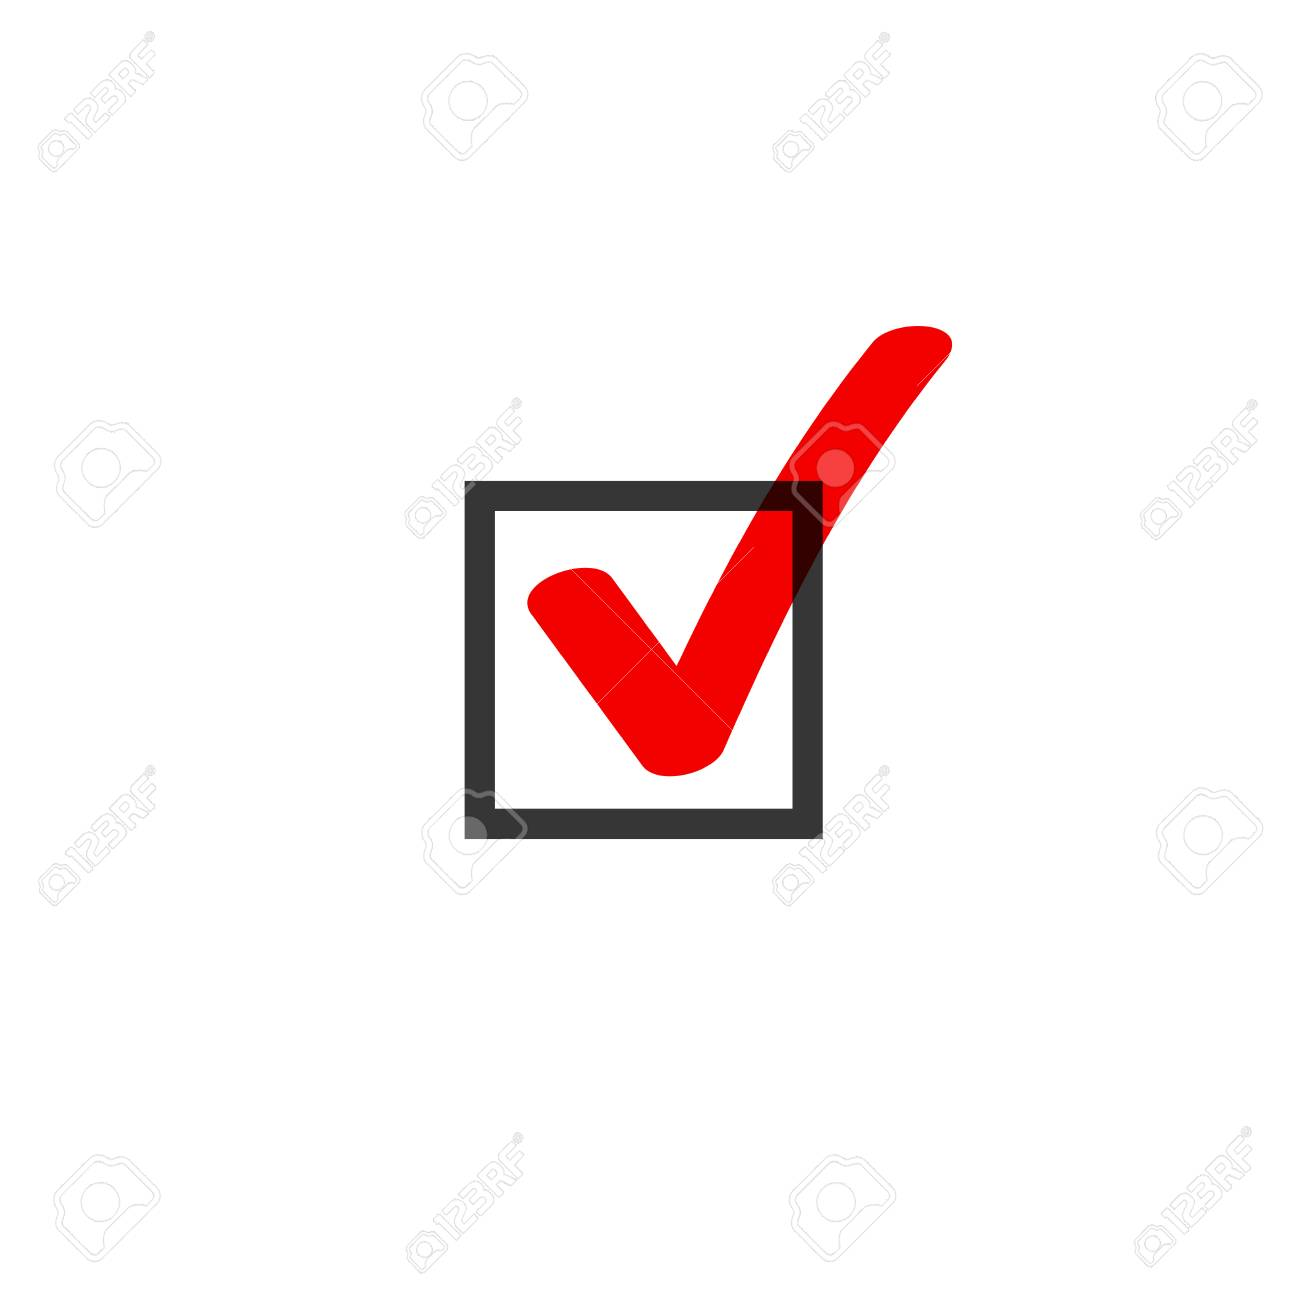 Tick icon vector symbol doodle style, red checkmark isolated on white background, checked icon or correct choice sign in black square, handwritten or drawn check mark or checkbox pictogram - 87763054